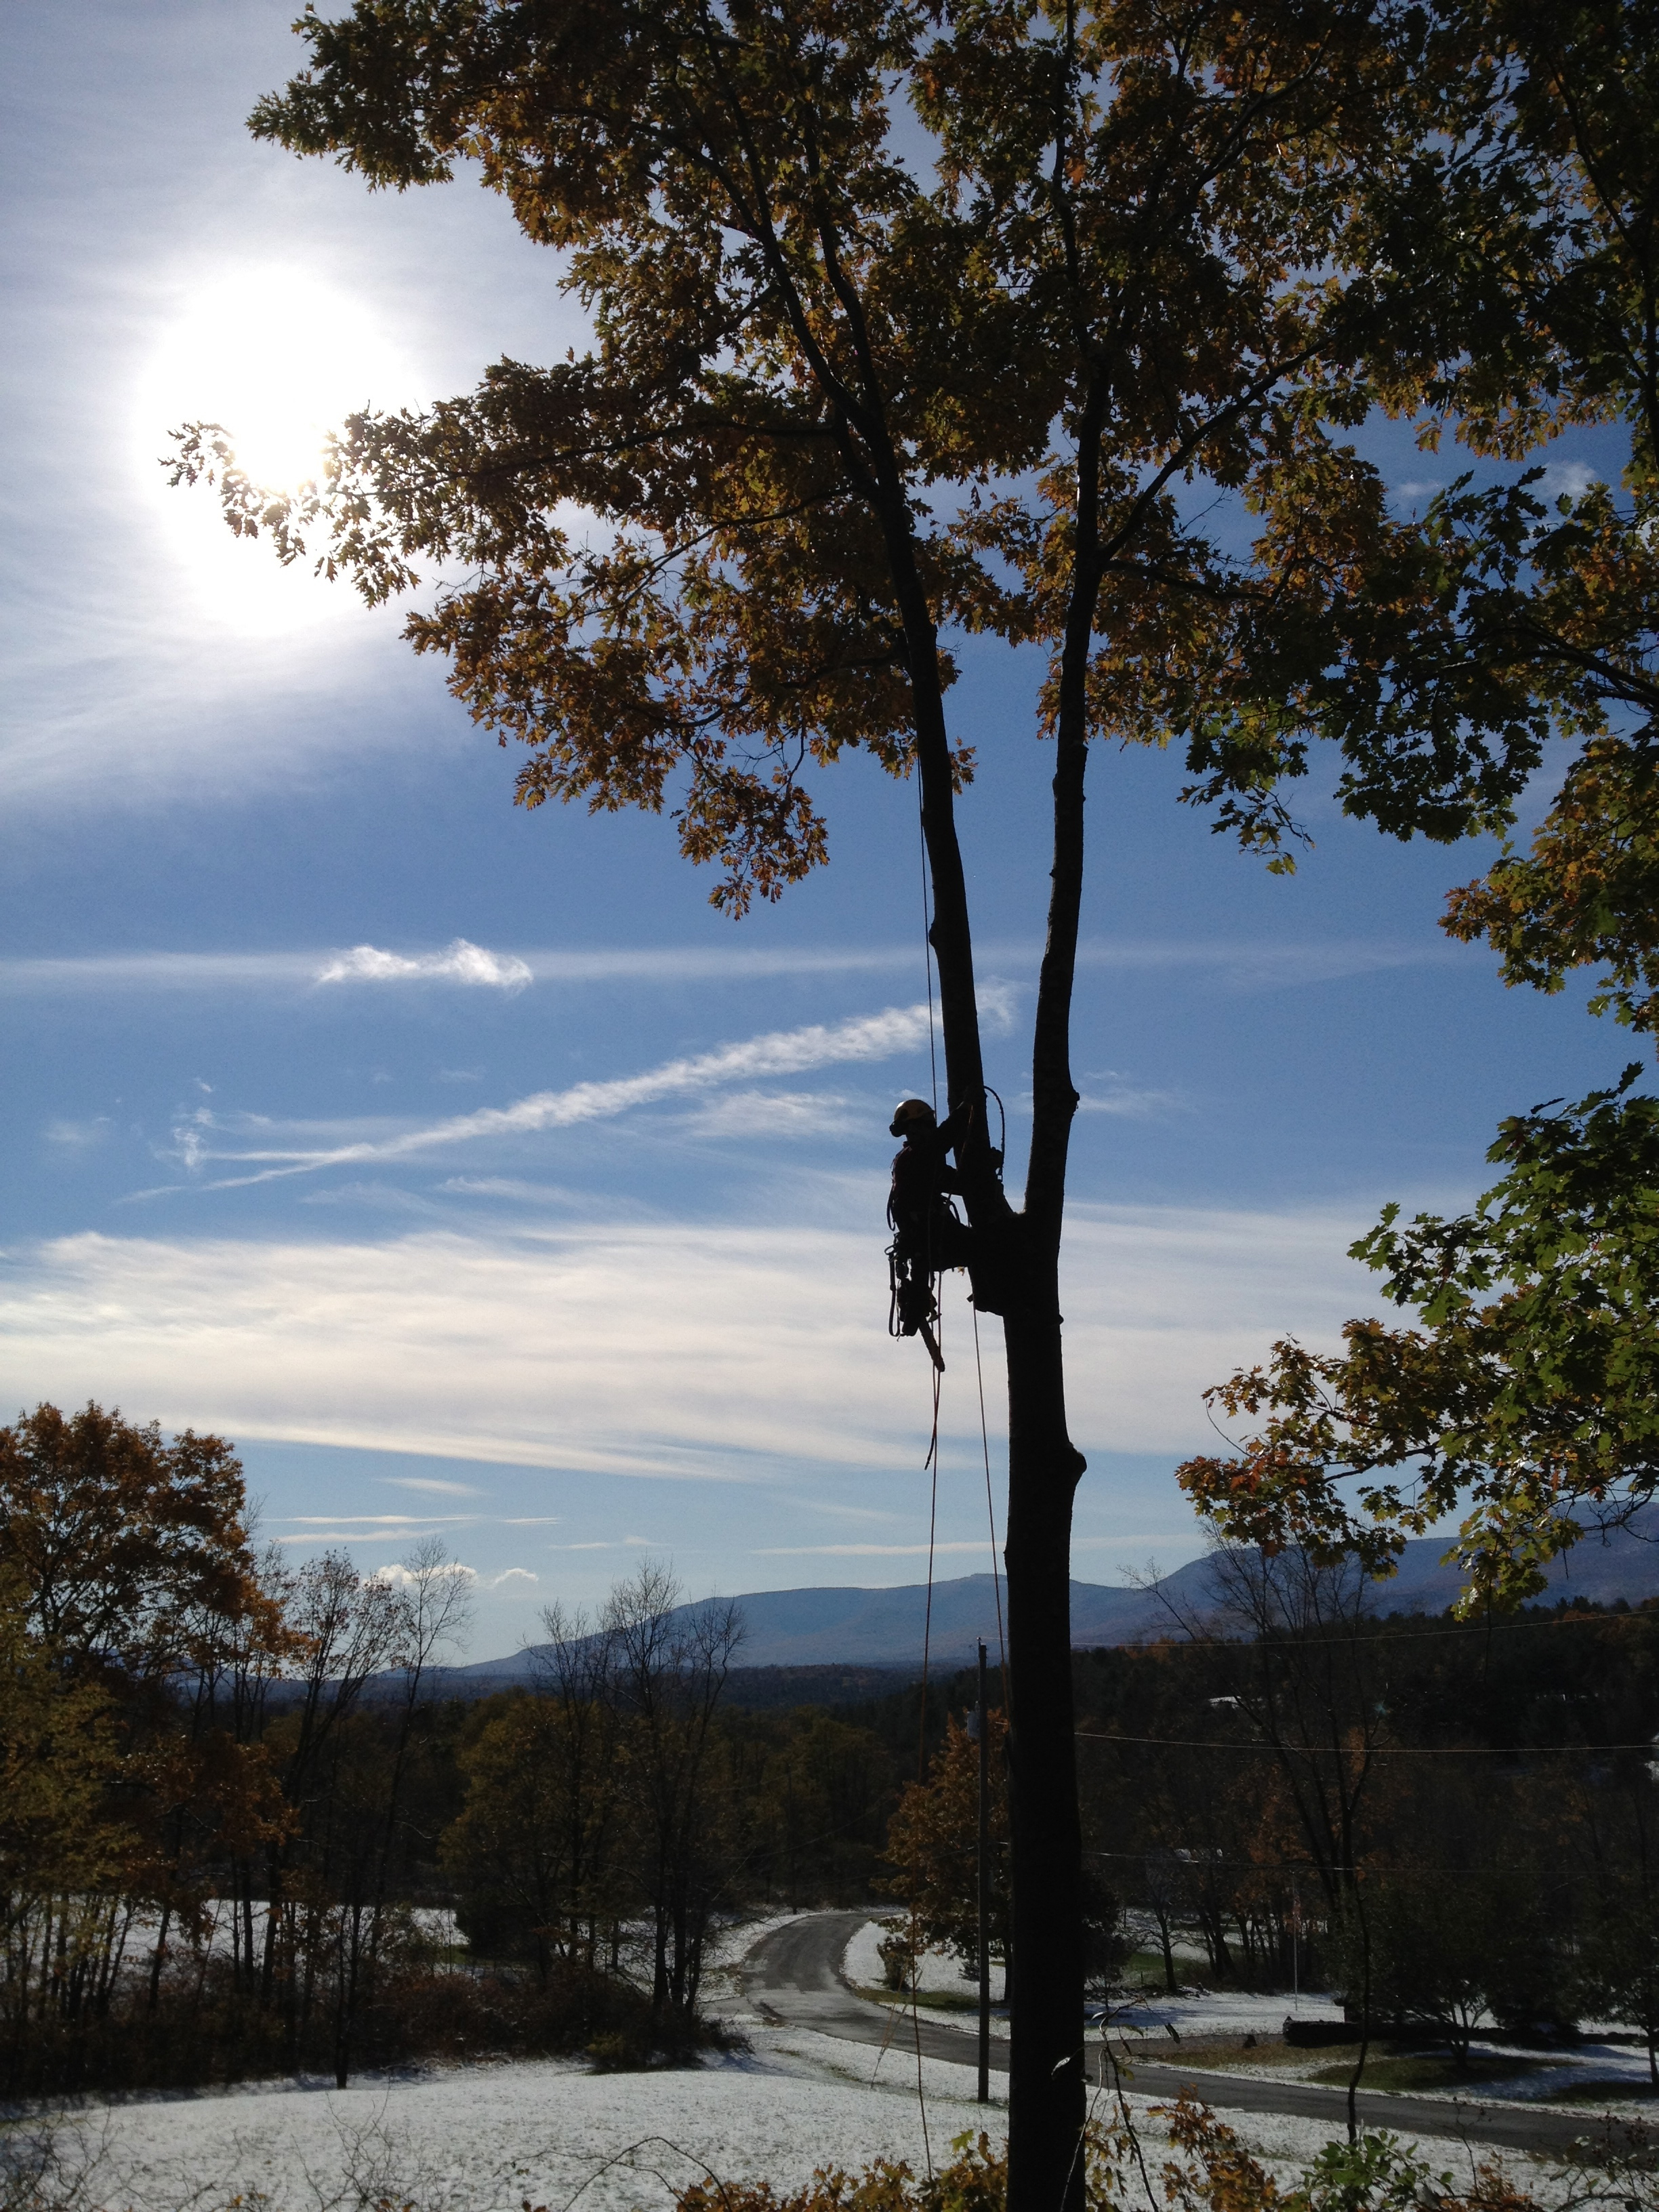 Certified arborist Caleb White performs vista pruning to improve a beautiful view of the Catskills.